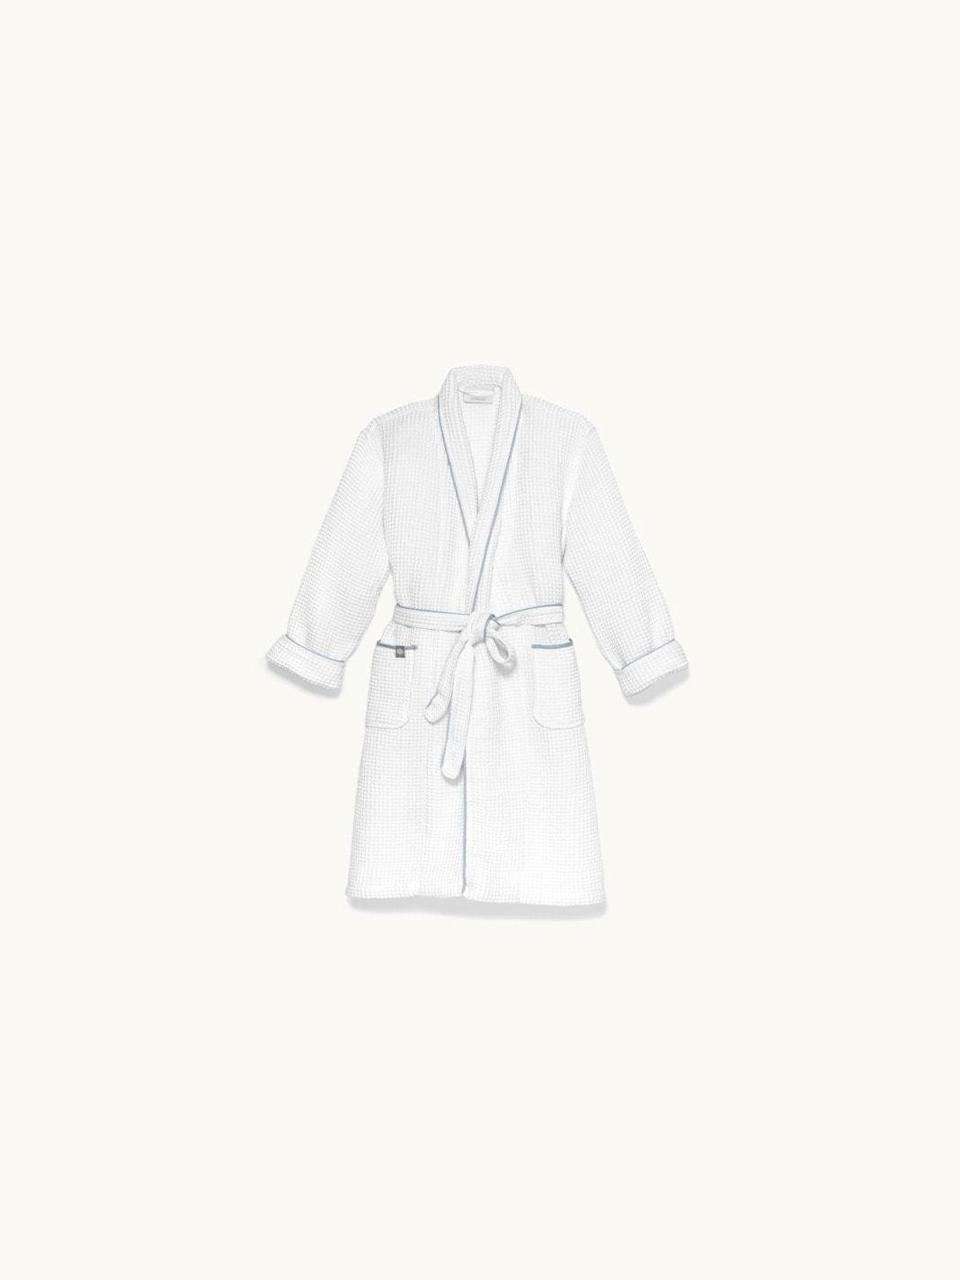 "<h3><a href=""https://www.bollandbranch.com/products/womens-waffle-robe"" rel=""nofollow noopener"" target=""_blank"" data-ylk=""slk:Boll & Branch Waffle Robe"" class=""link rapid-noclick-resp"">Boll & Branch Waffle Robe</a></h3> <br>Described as ""plush"" and ""super-springy,"" this waffle-weave robe is crafted from super absorbent materials that are perfect for swaddling any bod post-shower (or bubble bath).<br><br>One reviewer calls it, ""Superb in every way- yummy soft texture washes beautifully, sized properly. I'm lovin' it!""<br><br><strong>Boll And Branch</strong> Waffle Robe, $, available at <a href=""https://go.skimresources.com/?id=30283X879131&url=https%3A%2F%2Fwww.bollandbranch.com%2Fproducts%2Fwomens-waffle-robe"" rel=""nofollow noopener"" target=""_blank"" data-ylk=""slk:Boll And Branch"" class=""link rapid-noclick-resp"">Boll And Branch</a><br><br><br>"